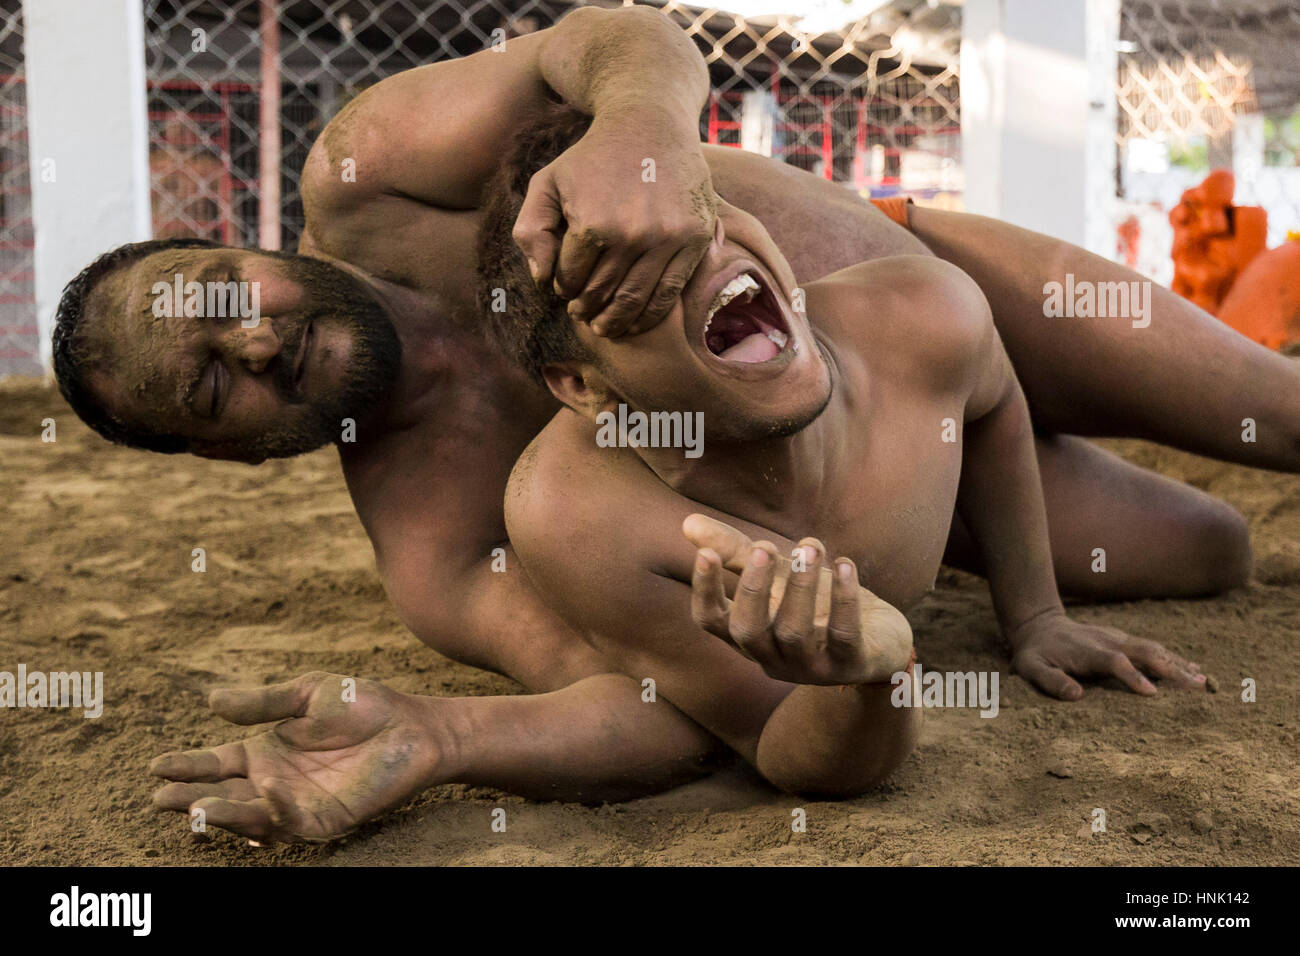 Wrestling match. At around 7am local wrestlers practise their art on a small caged area of sand set just back from - Stock Image